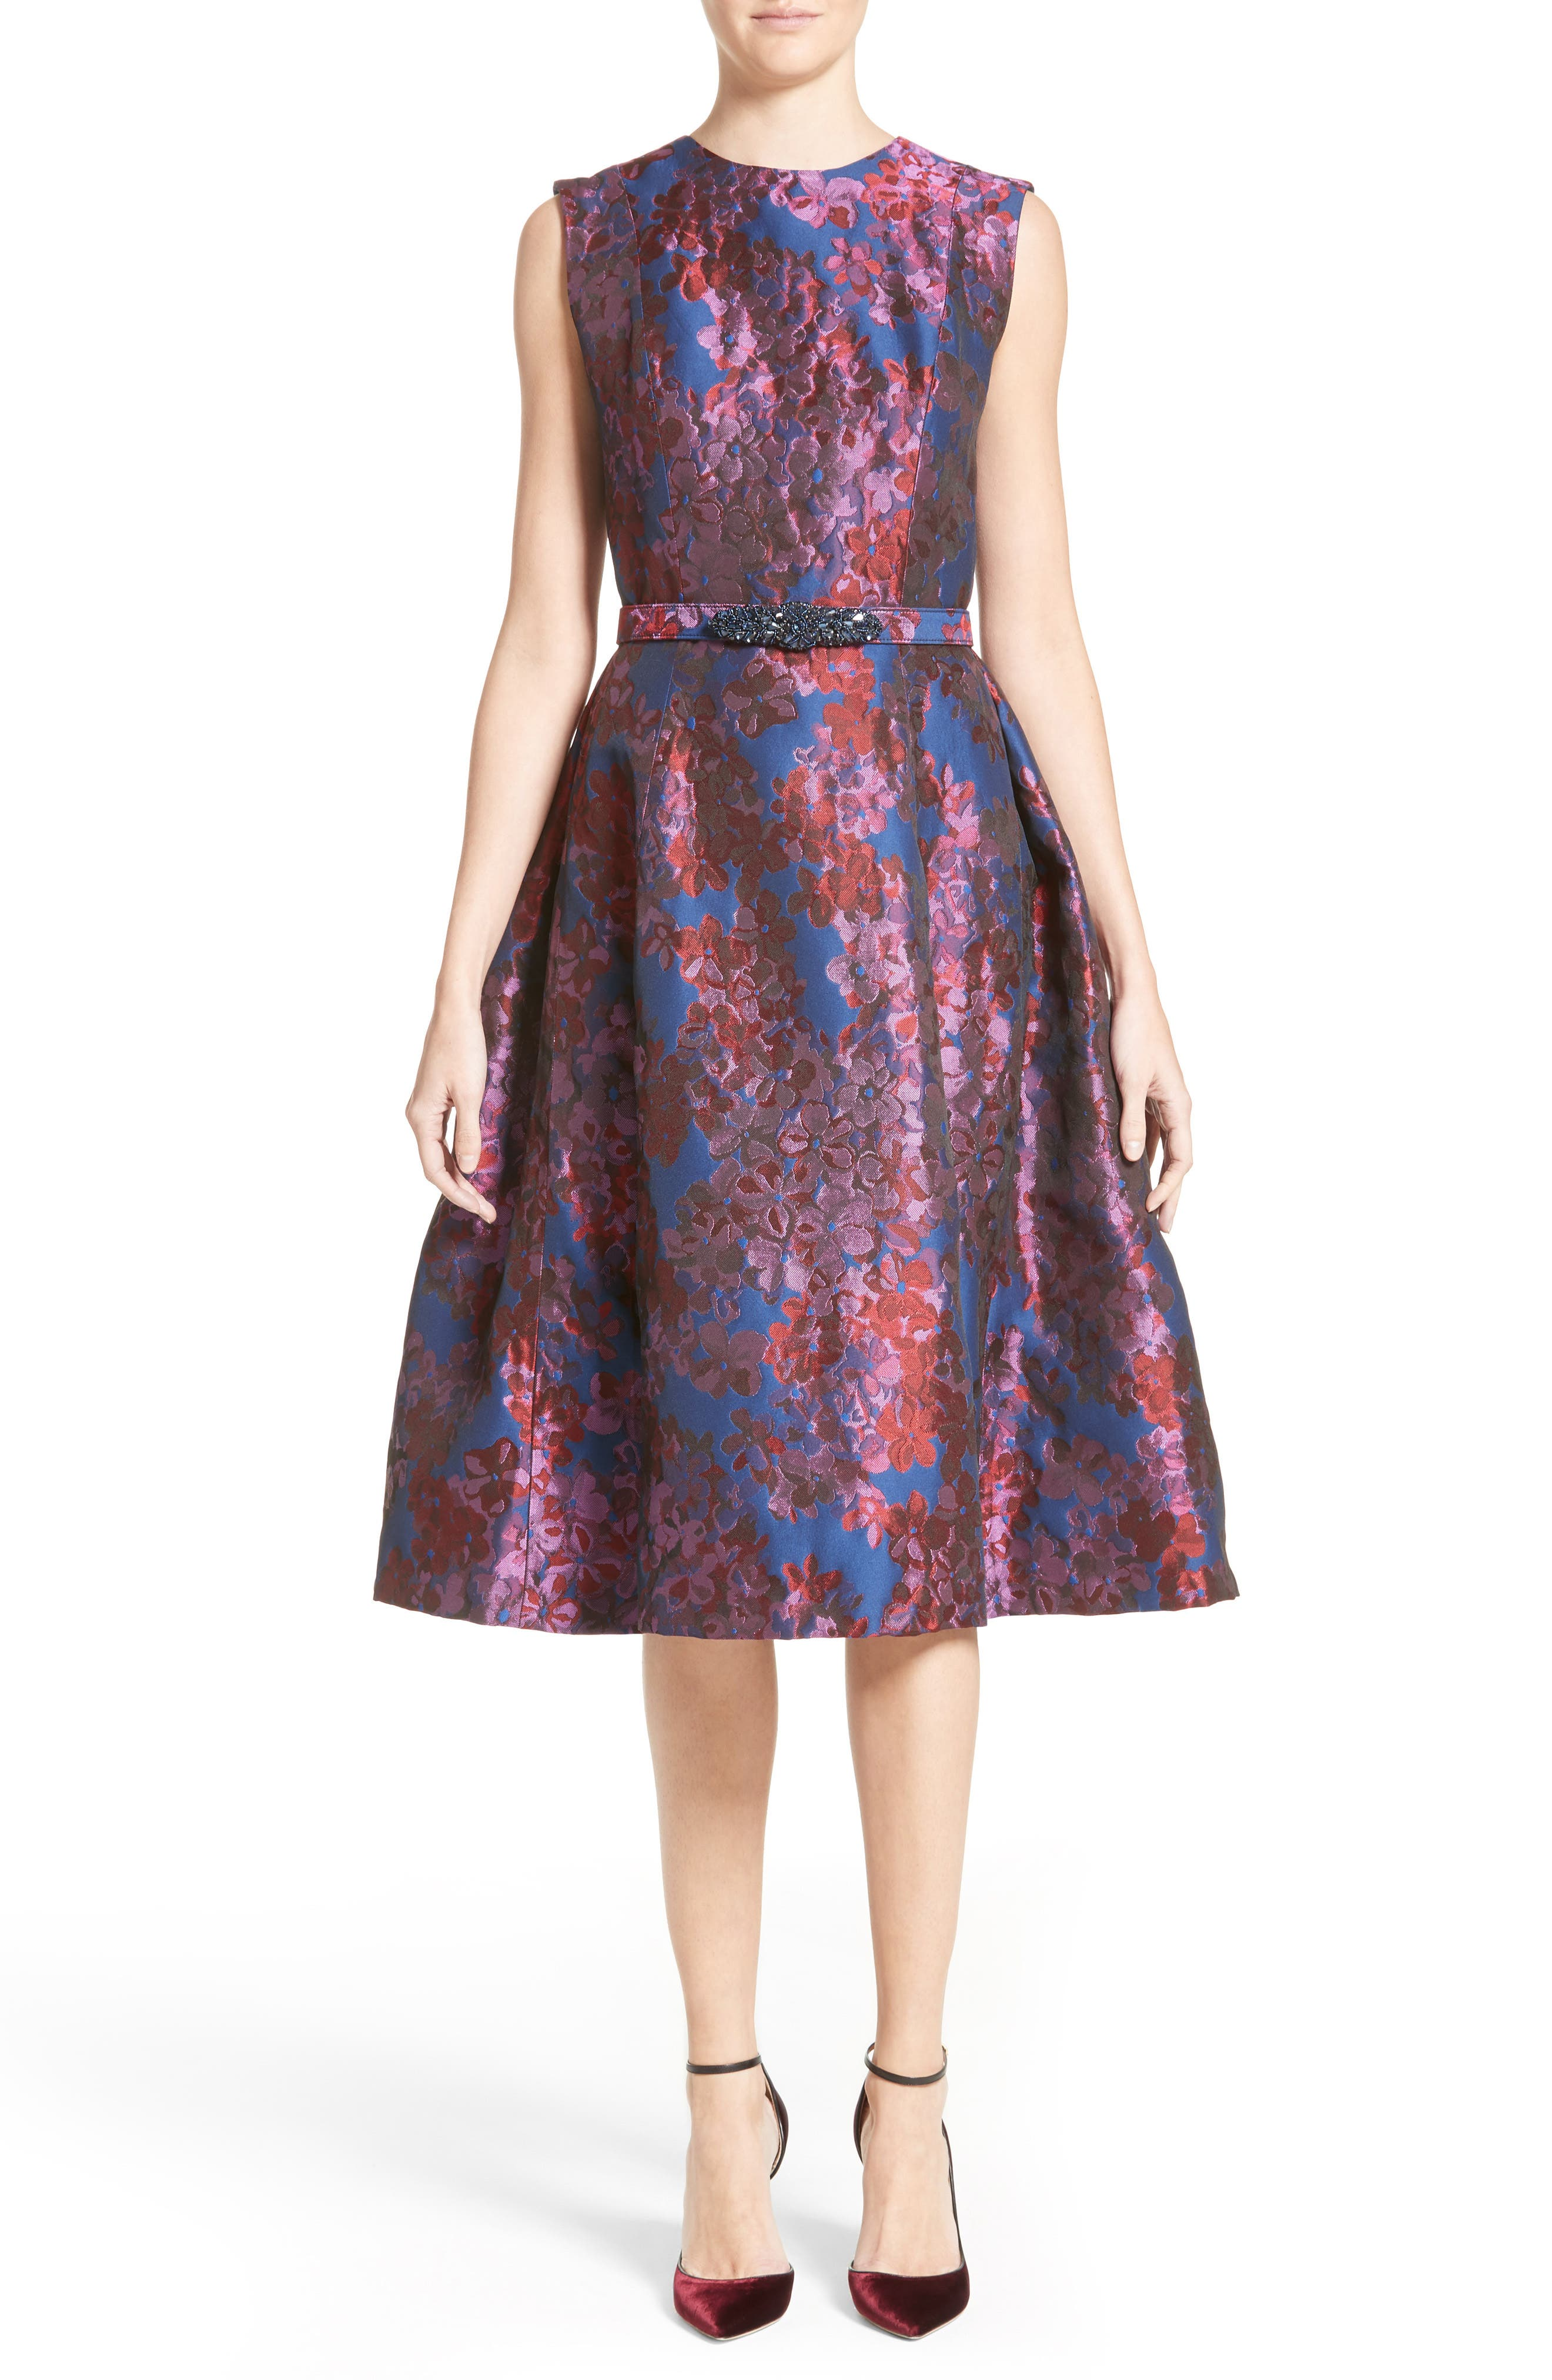 Alternate Image 1  - Badgley Mischka Couture Floral Jacquard Fit & Flare Dress (Nordstrom Exclusive)